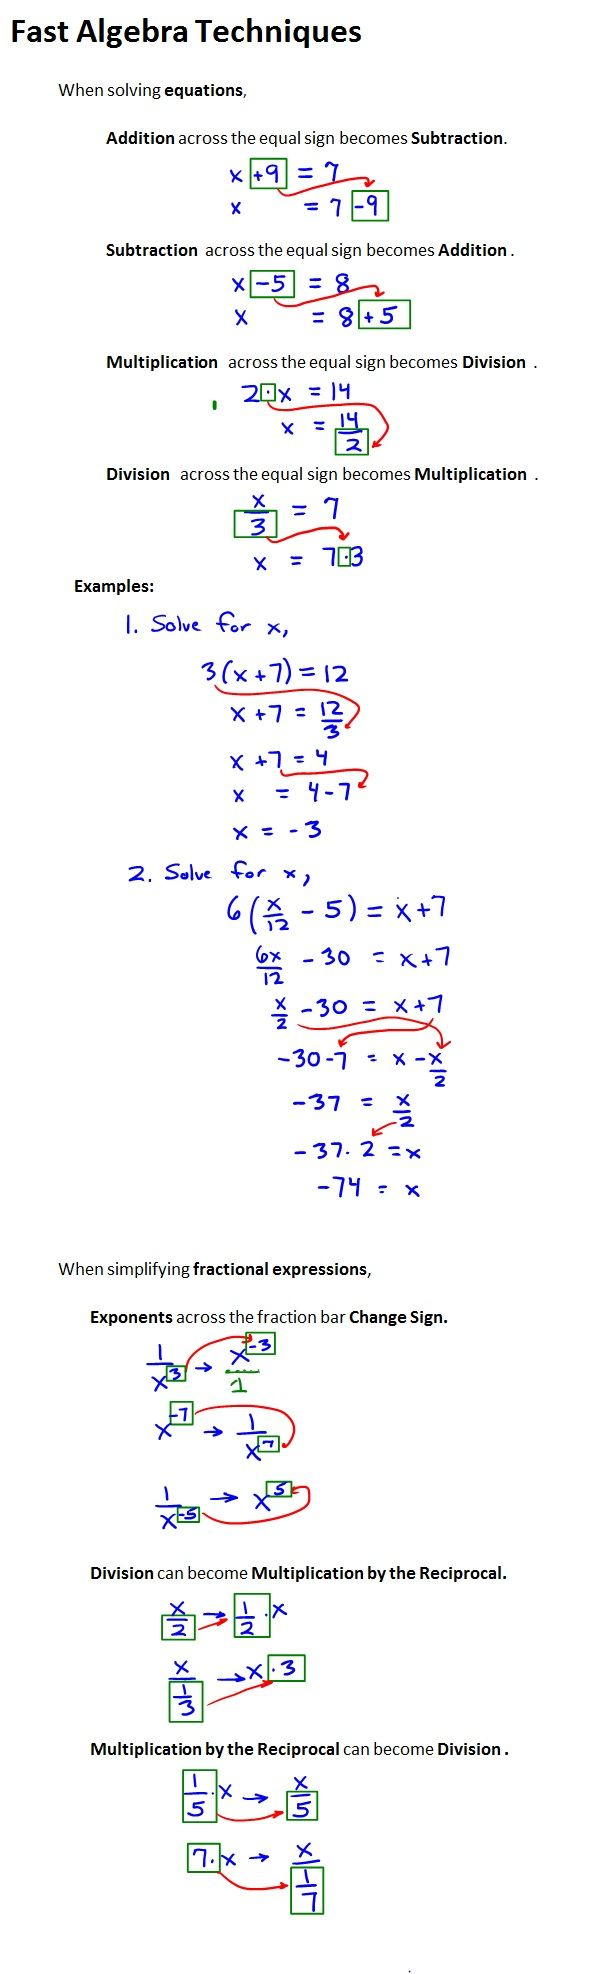 At some point a #math student needs to move from learning #algebra to doing algebra. Many techniques that students learn are designed to facilitate a person's understanding and remembrance of algebra